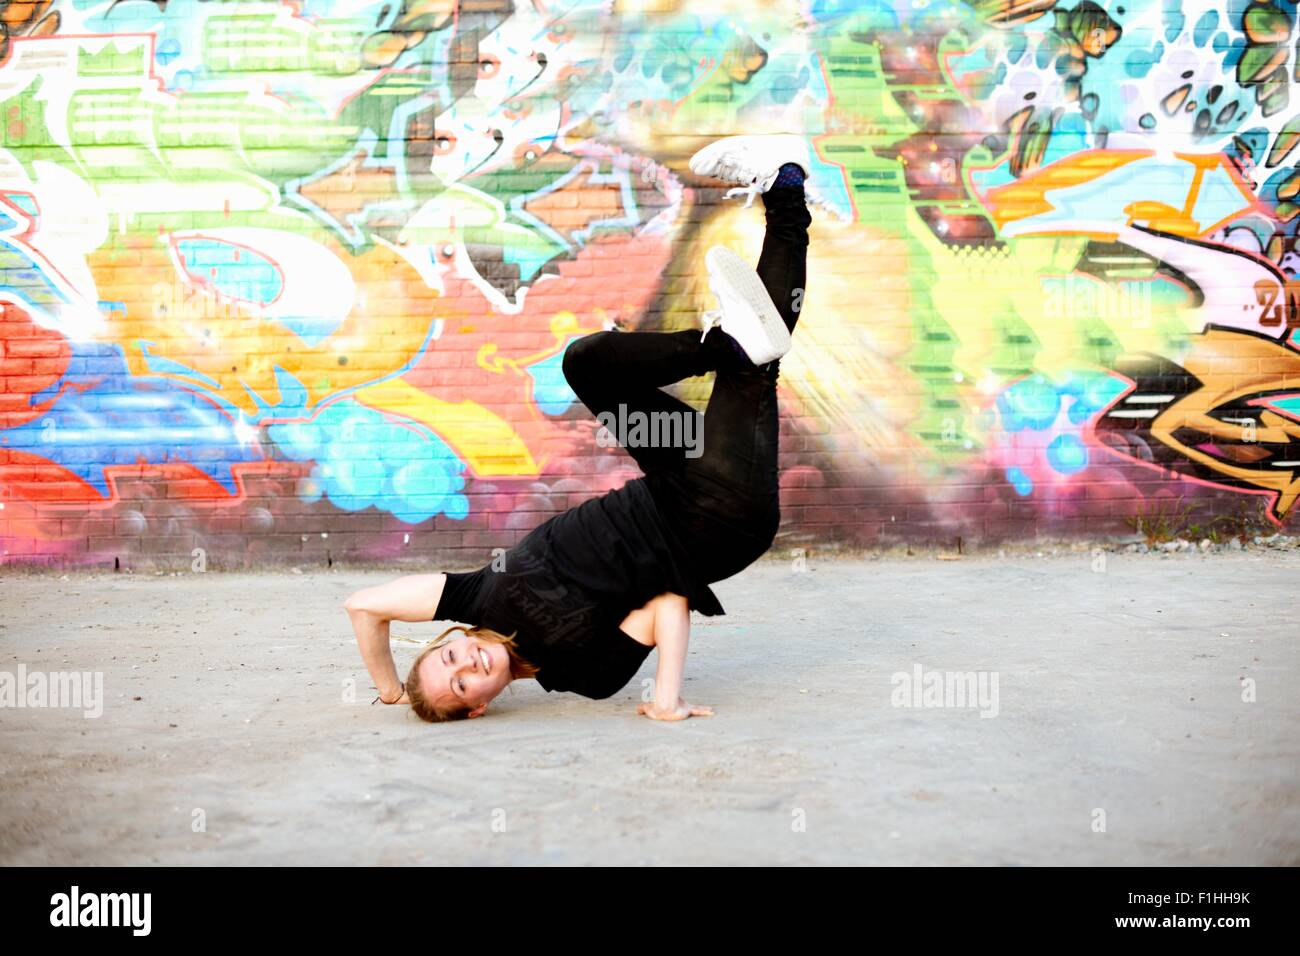 Young woman in upside down breakdancing freeze against graffiti Stock Photo